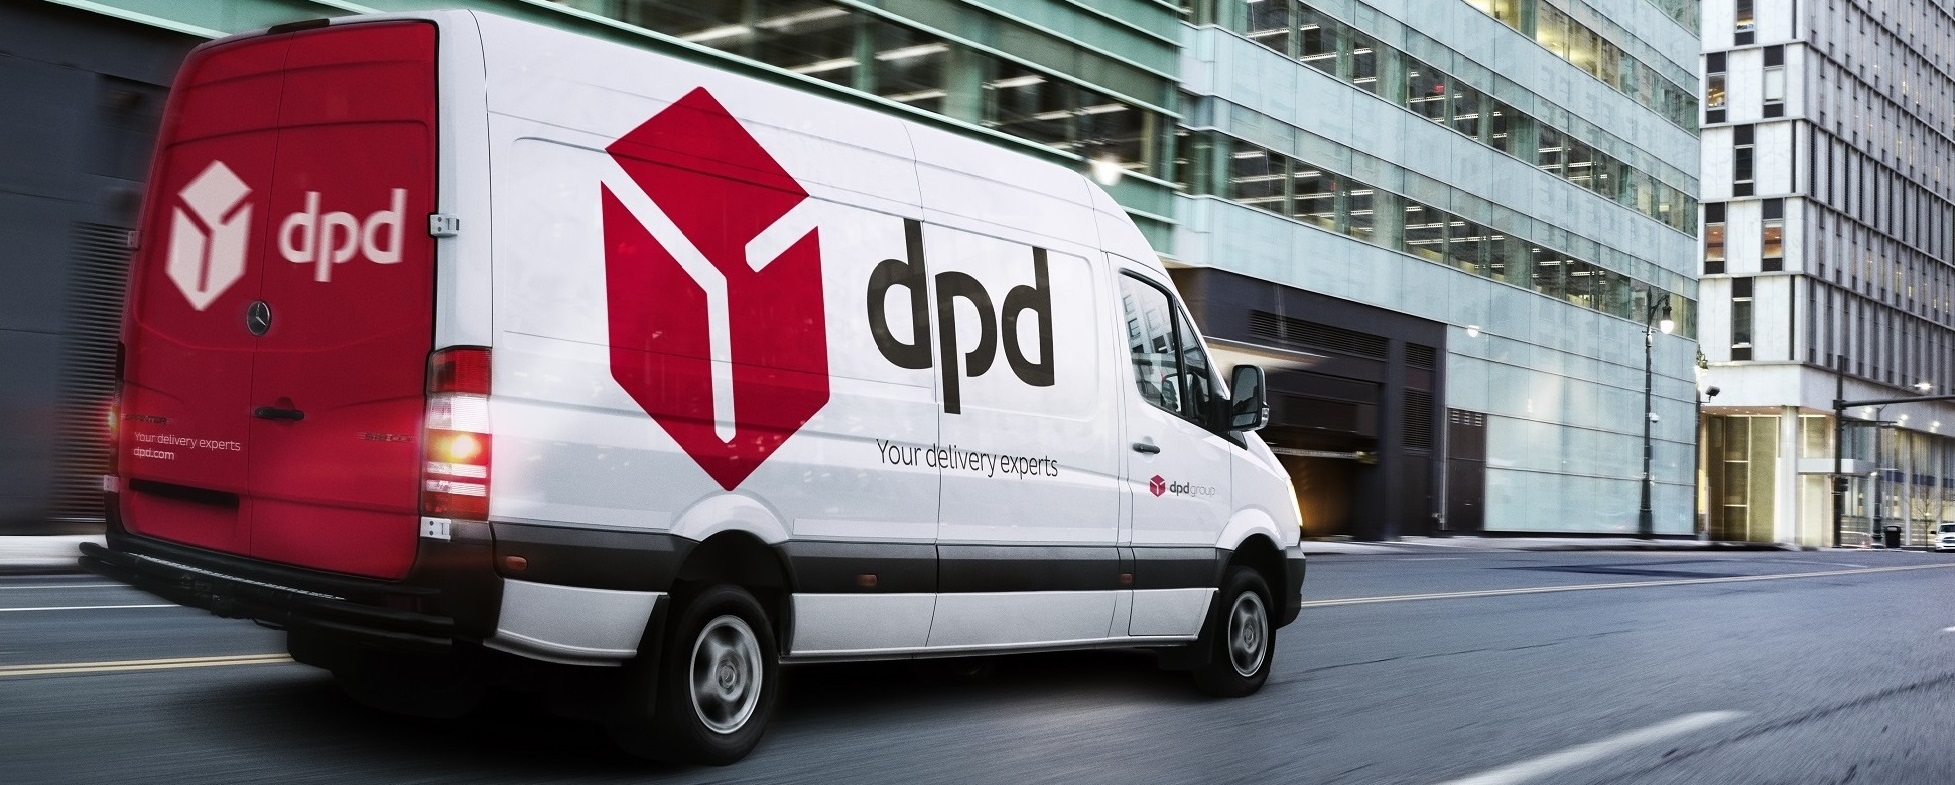 Dpd Ireland S Largest Courier Company Home